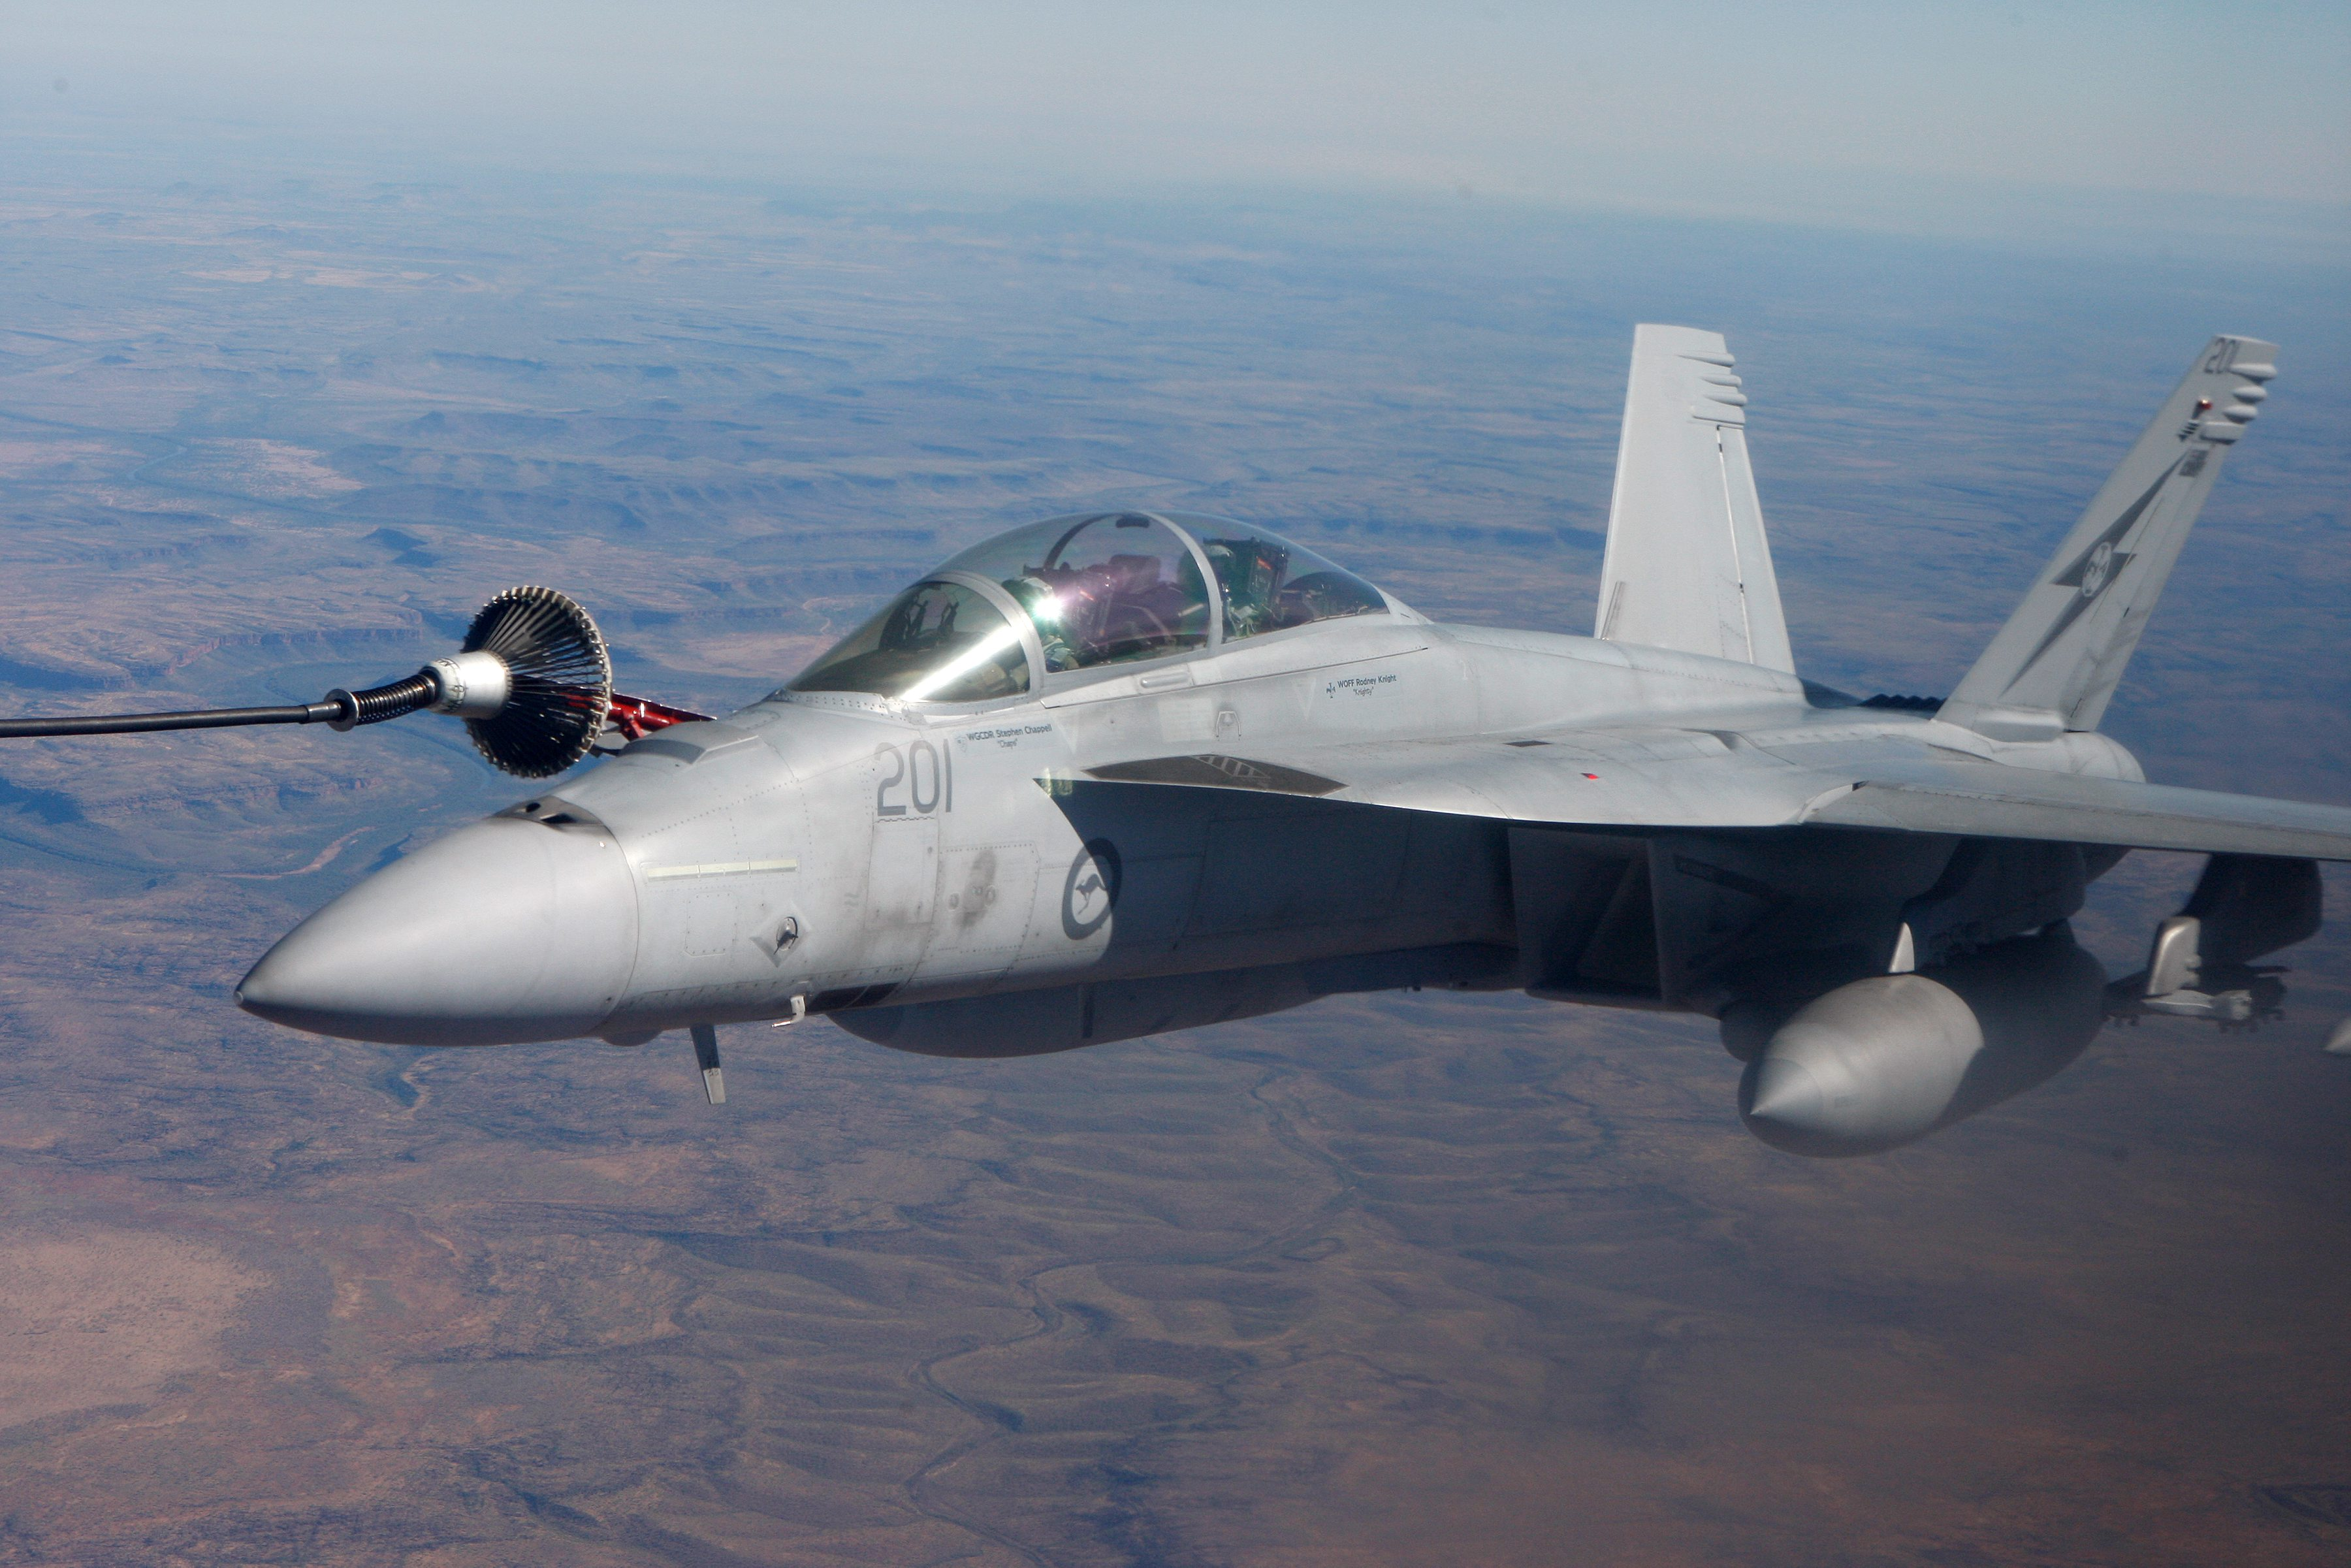 Un F/A-18F Super Hornet de la Royal Australian Air Force effectue une sortie de ravitaillement air-air avec un CC130H Hercules de l'Aviation royale canadienne durant l'exercice Pitch Black 2016, qui a eu lieu du 29 juillet au 19 août dans le Territoire du Nord en Australie. PHOTO : Caporal Terry Hartin © Commonwealth d'Australie